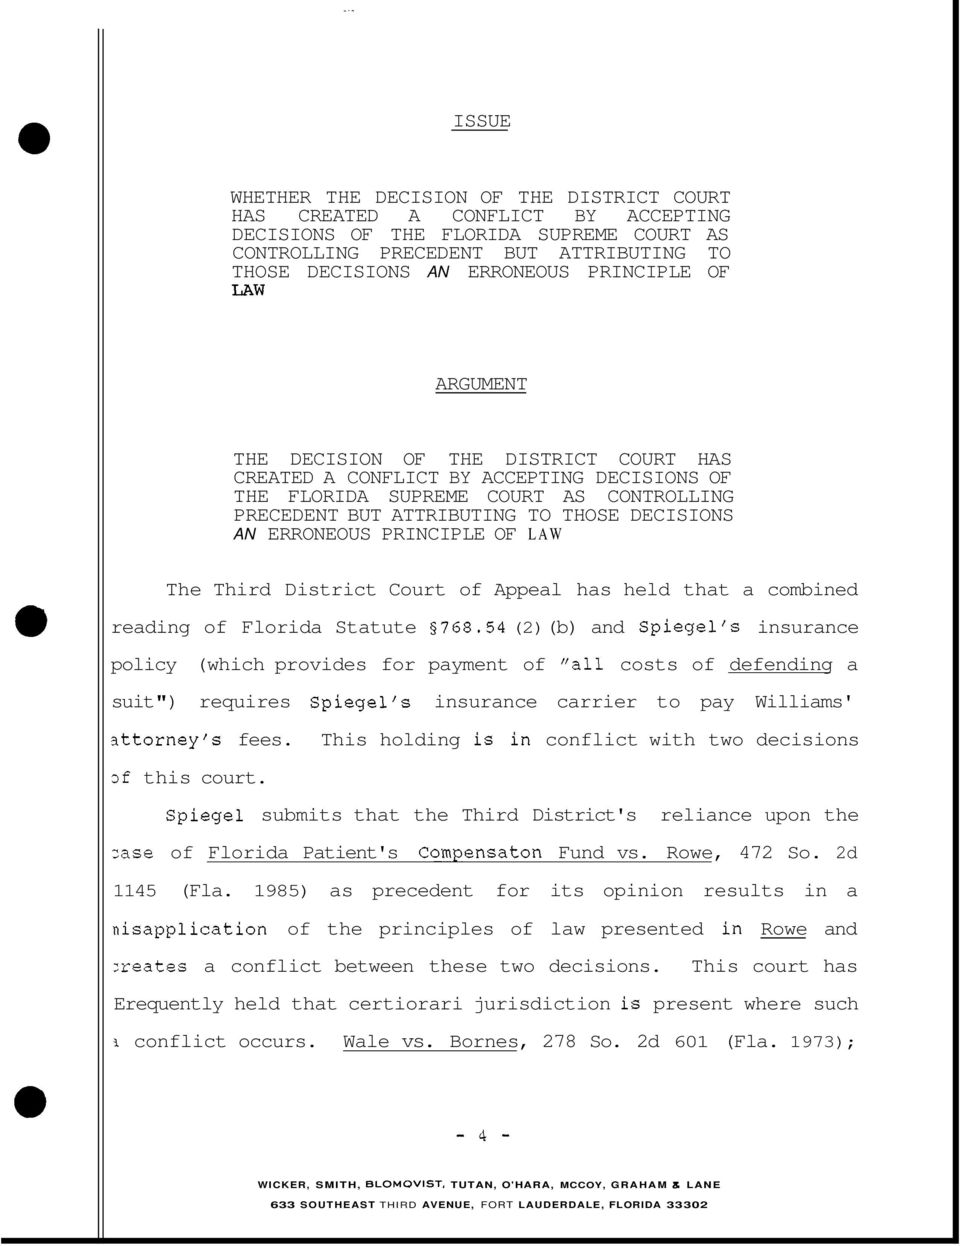 ERRONEOUS PRINCIPLE OF LAW The Third District Court of Appeal has held that a combined reading of Florida Statute 5768.